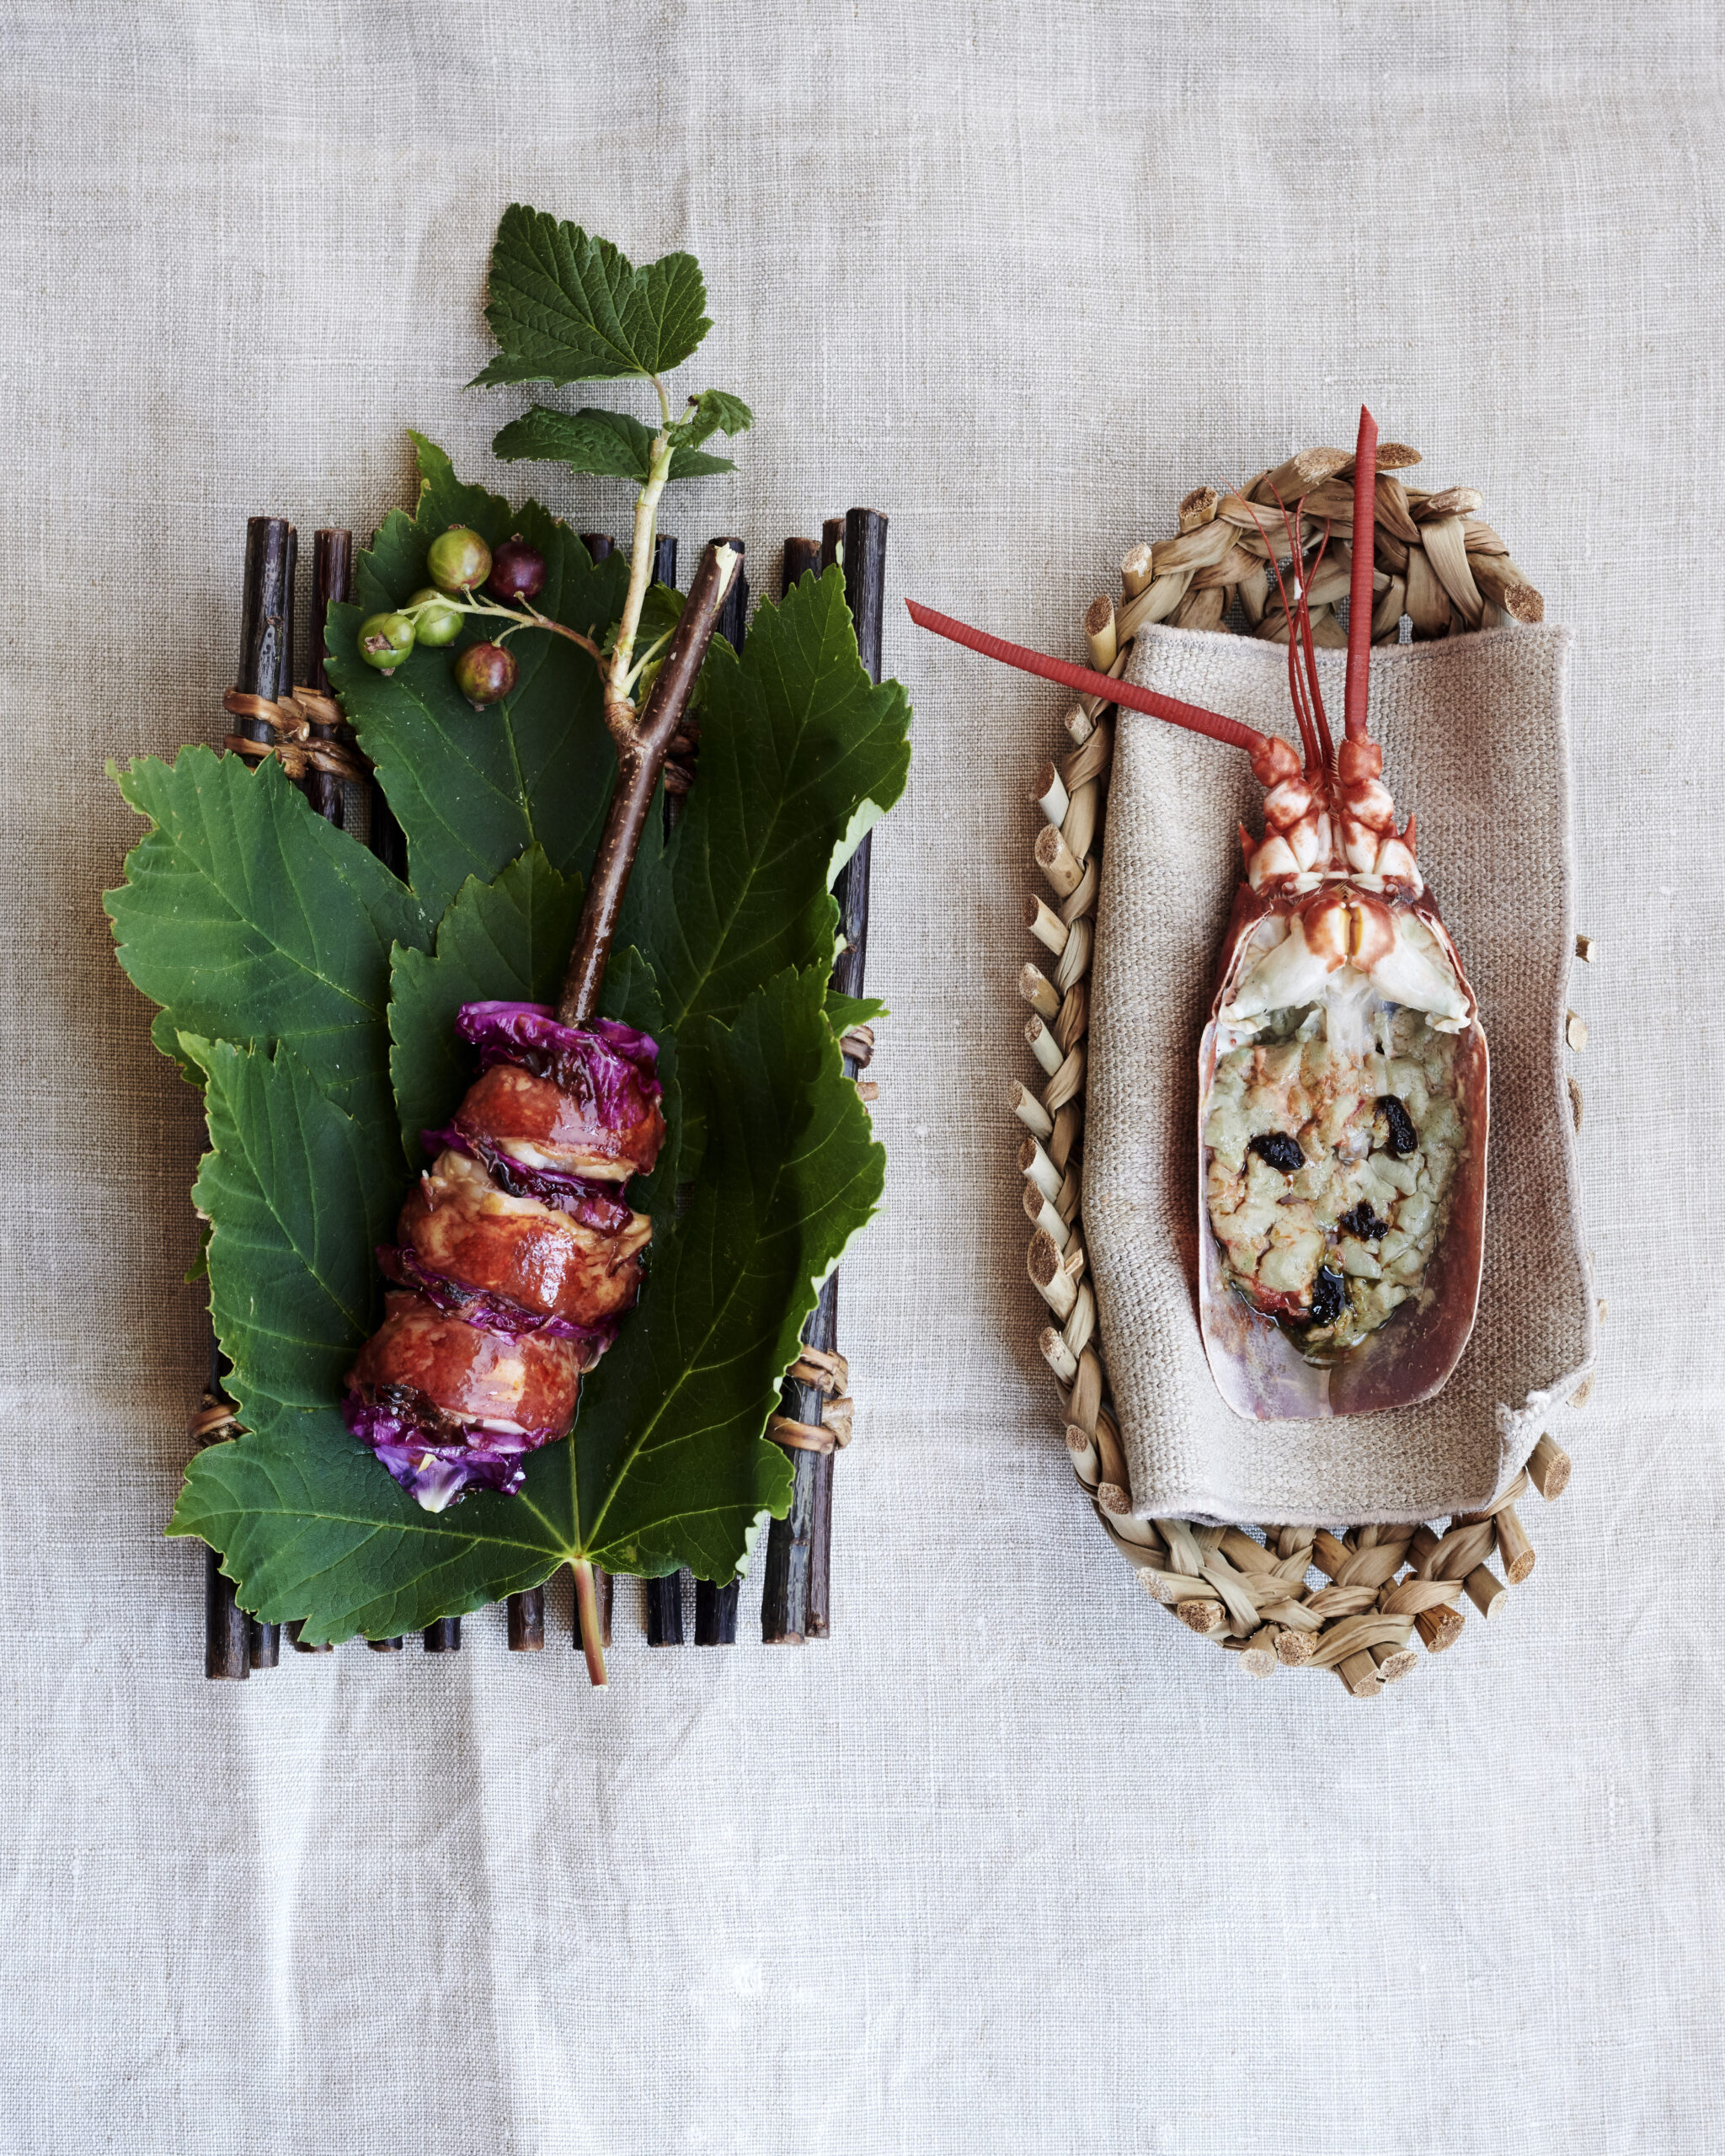 Noma - A skewer of grilled Danish black lobster with roses